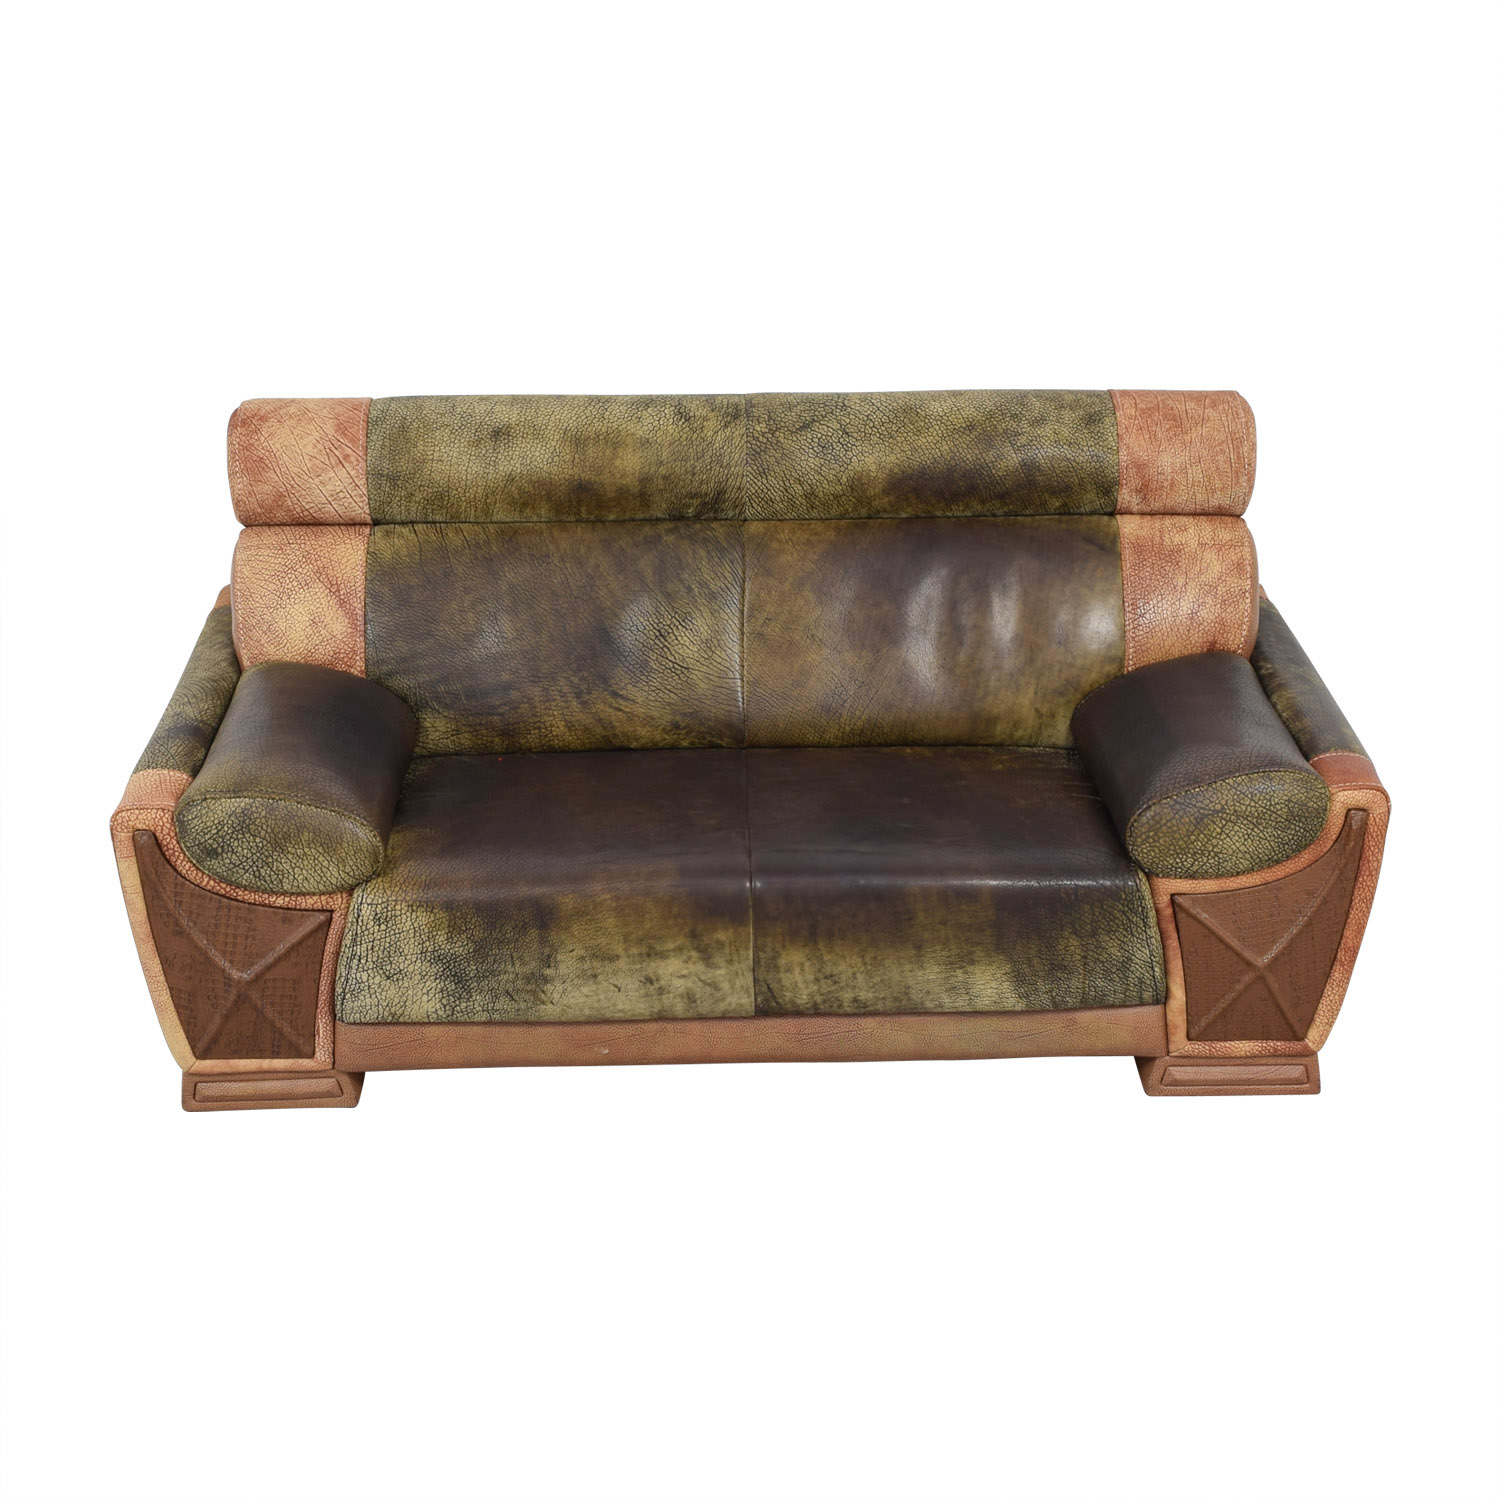 Two Tone Leather Two Seater Sofa used